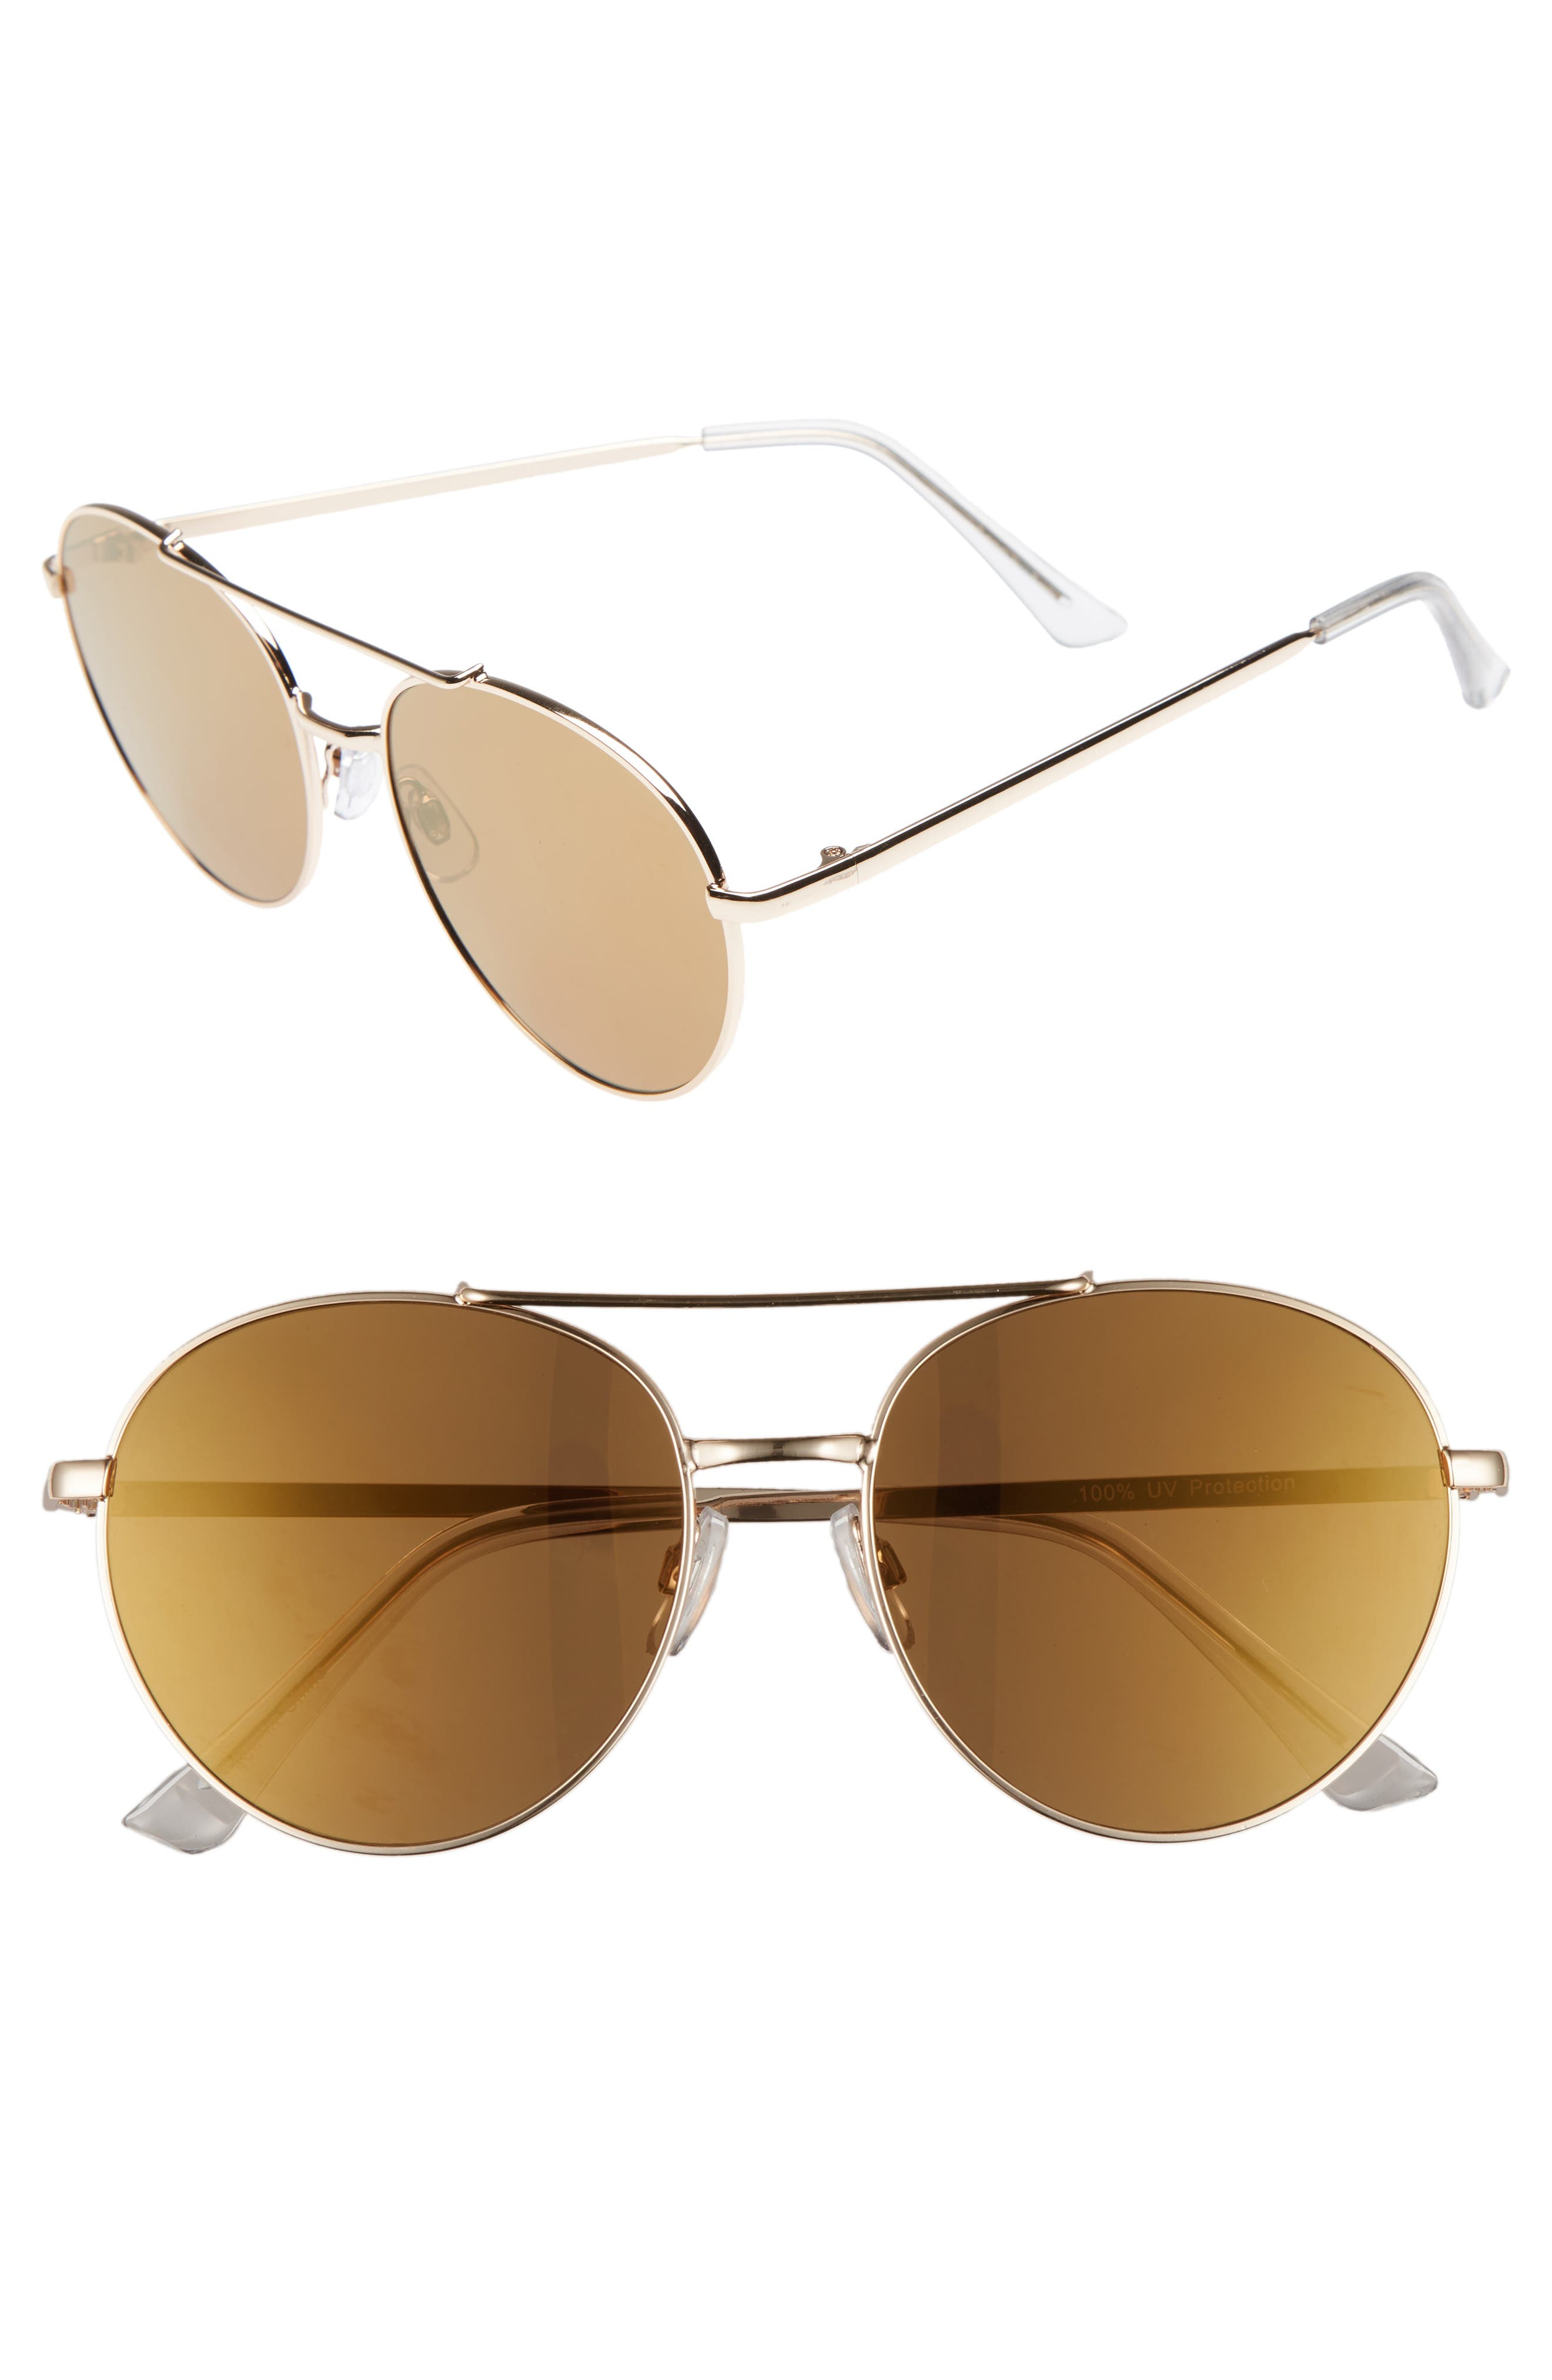 Lucky Seven 55mm Metal Aviator Sunglasses,                         Main,                         color, 710